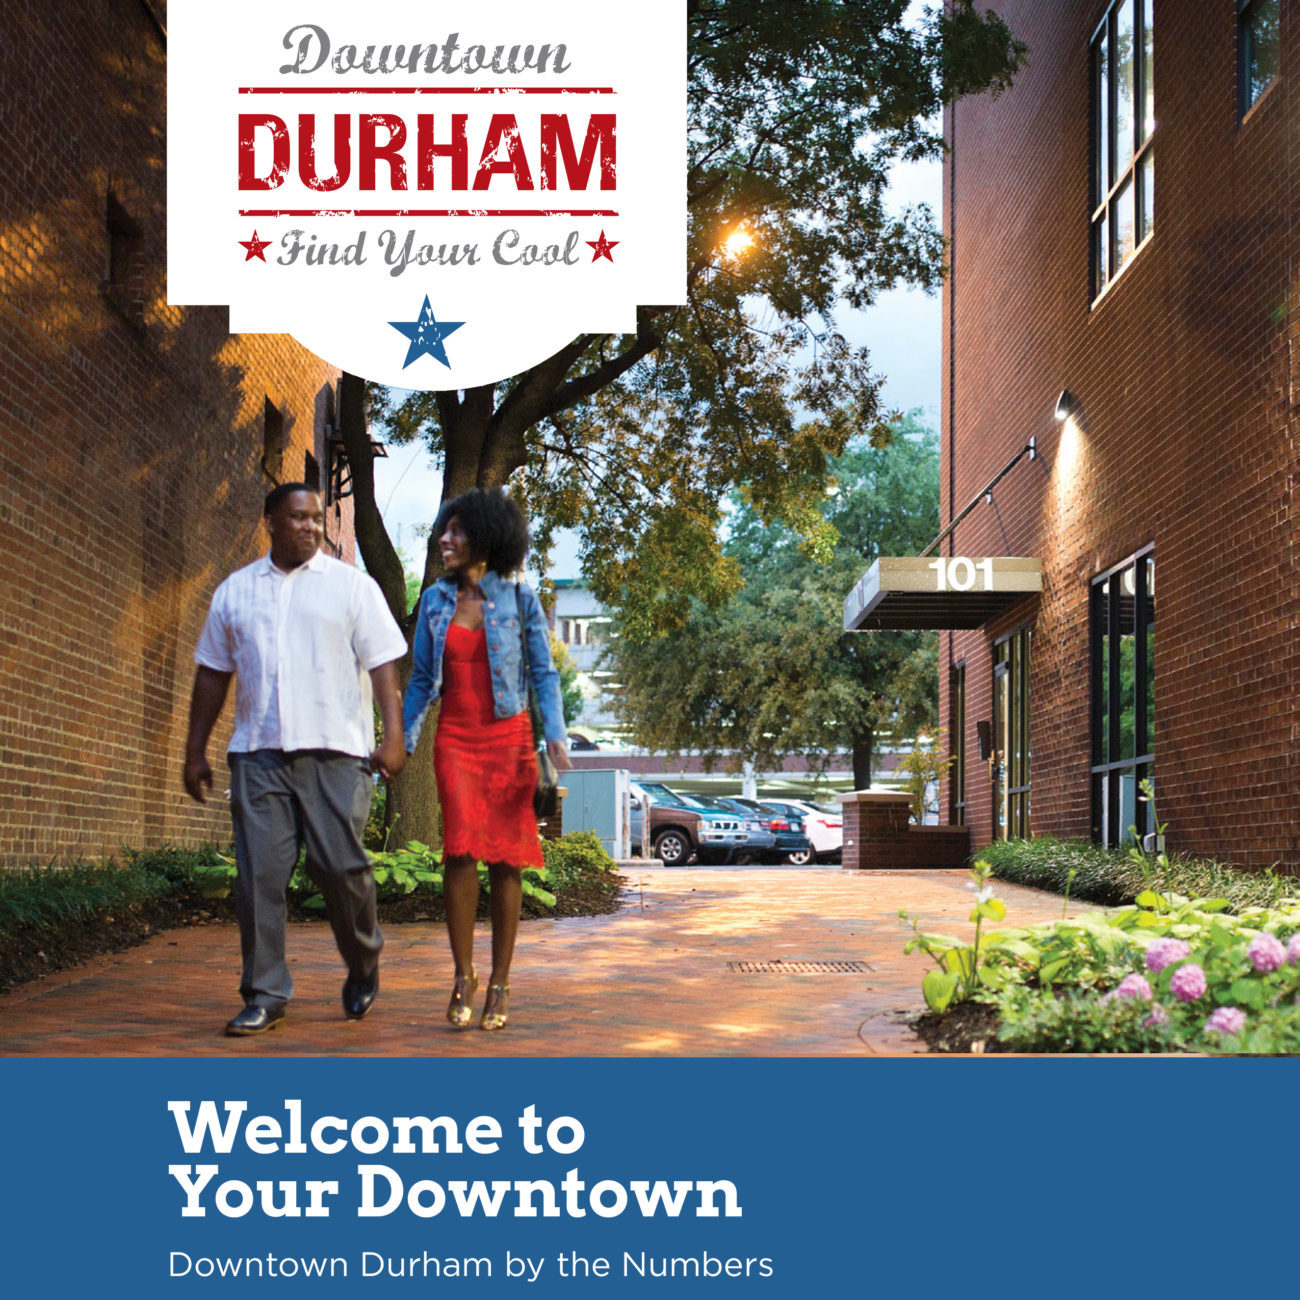 Downtown Durham by the Numbers